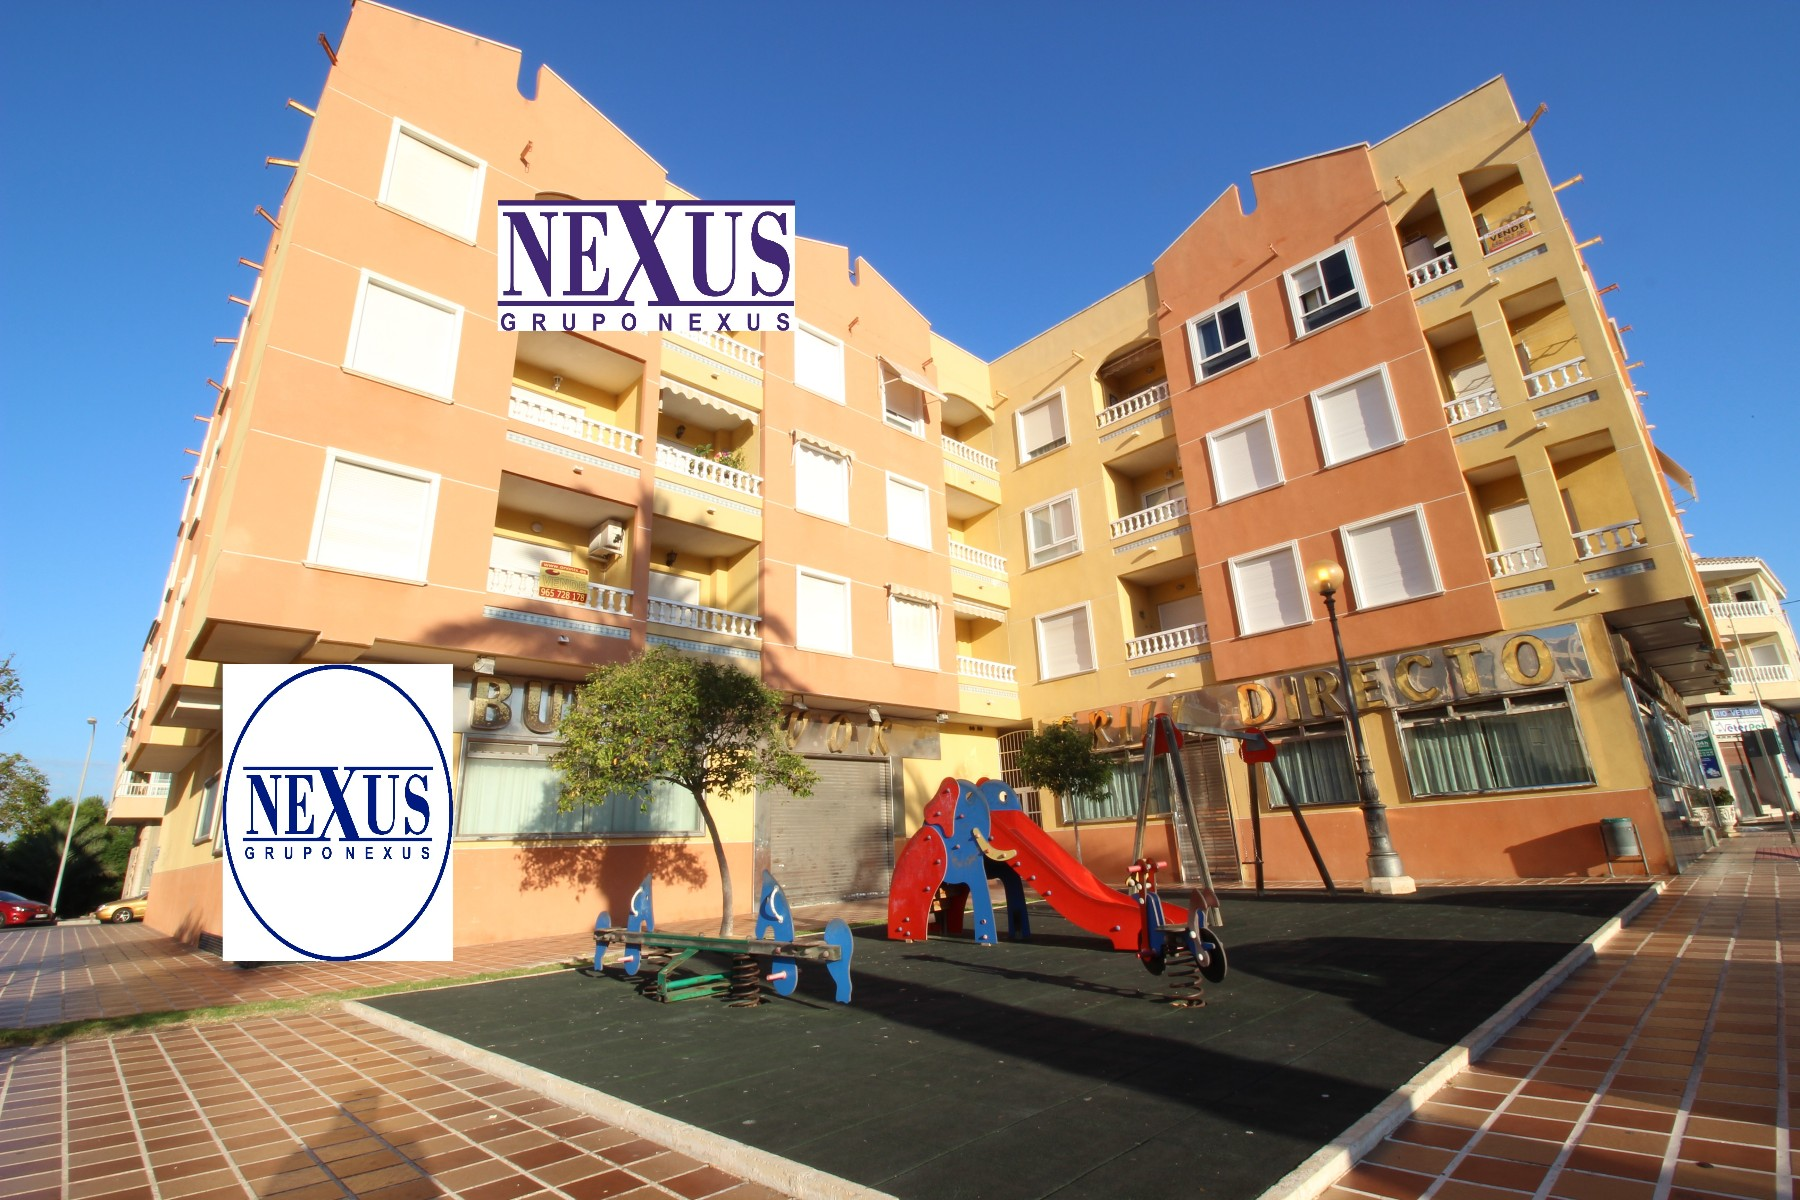 Grupo Nexus Real Estate Agency in social networks